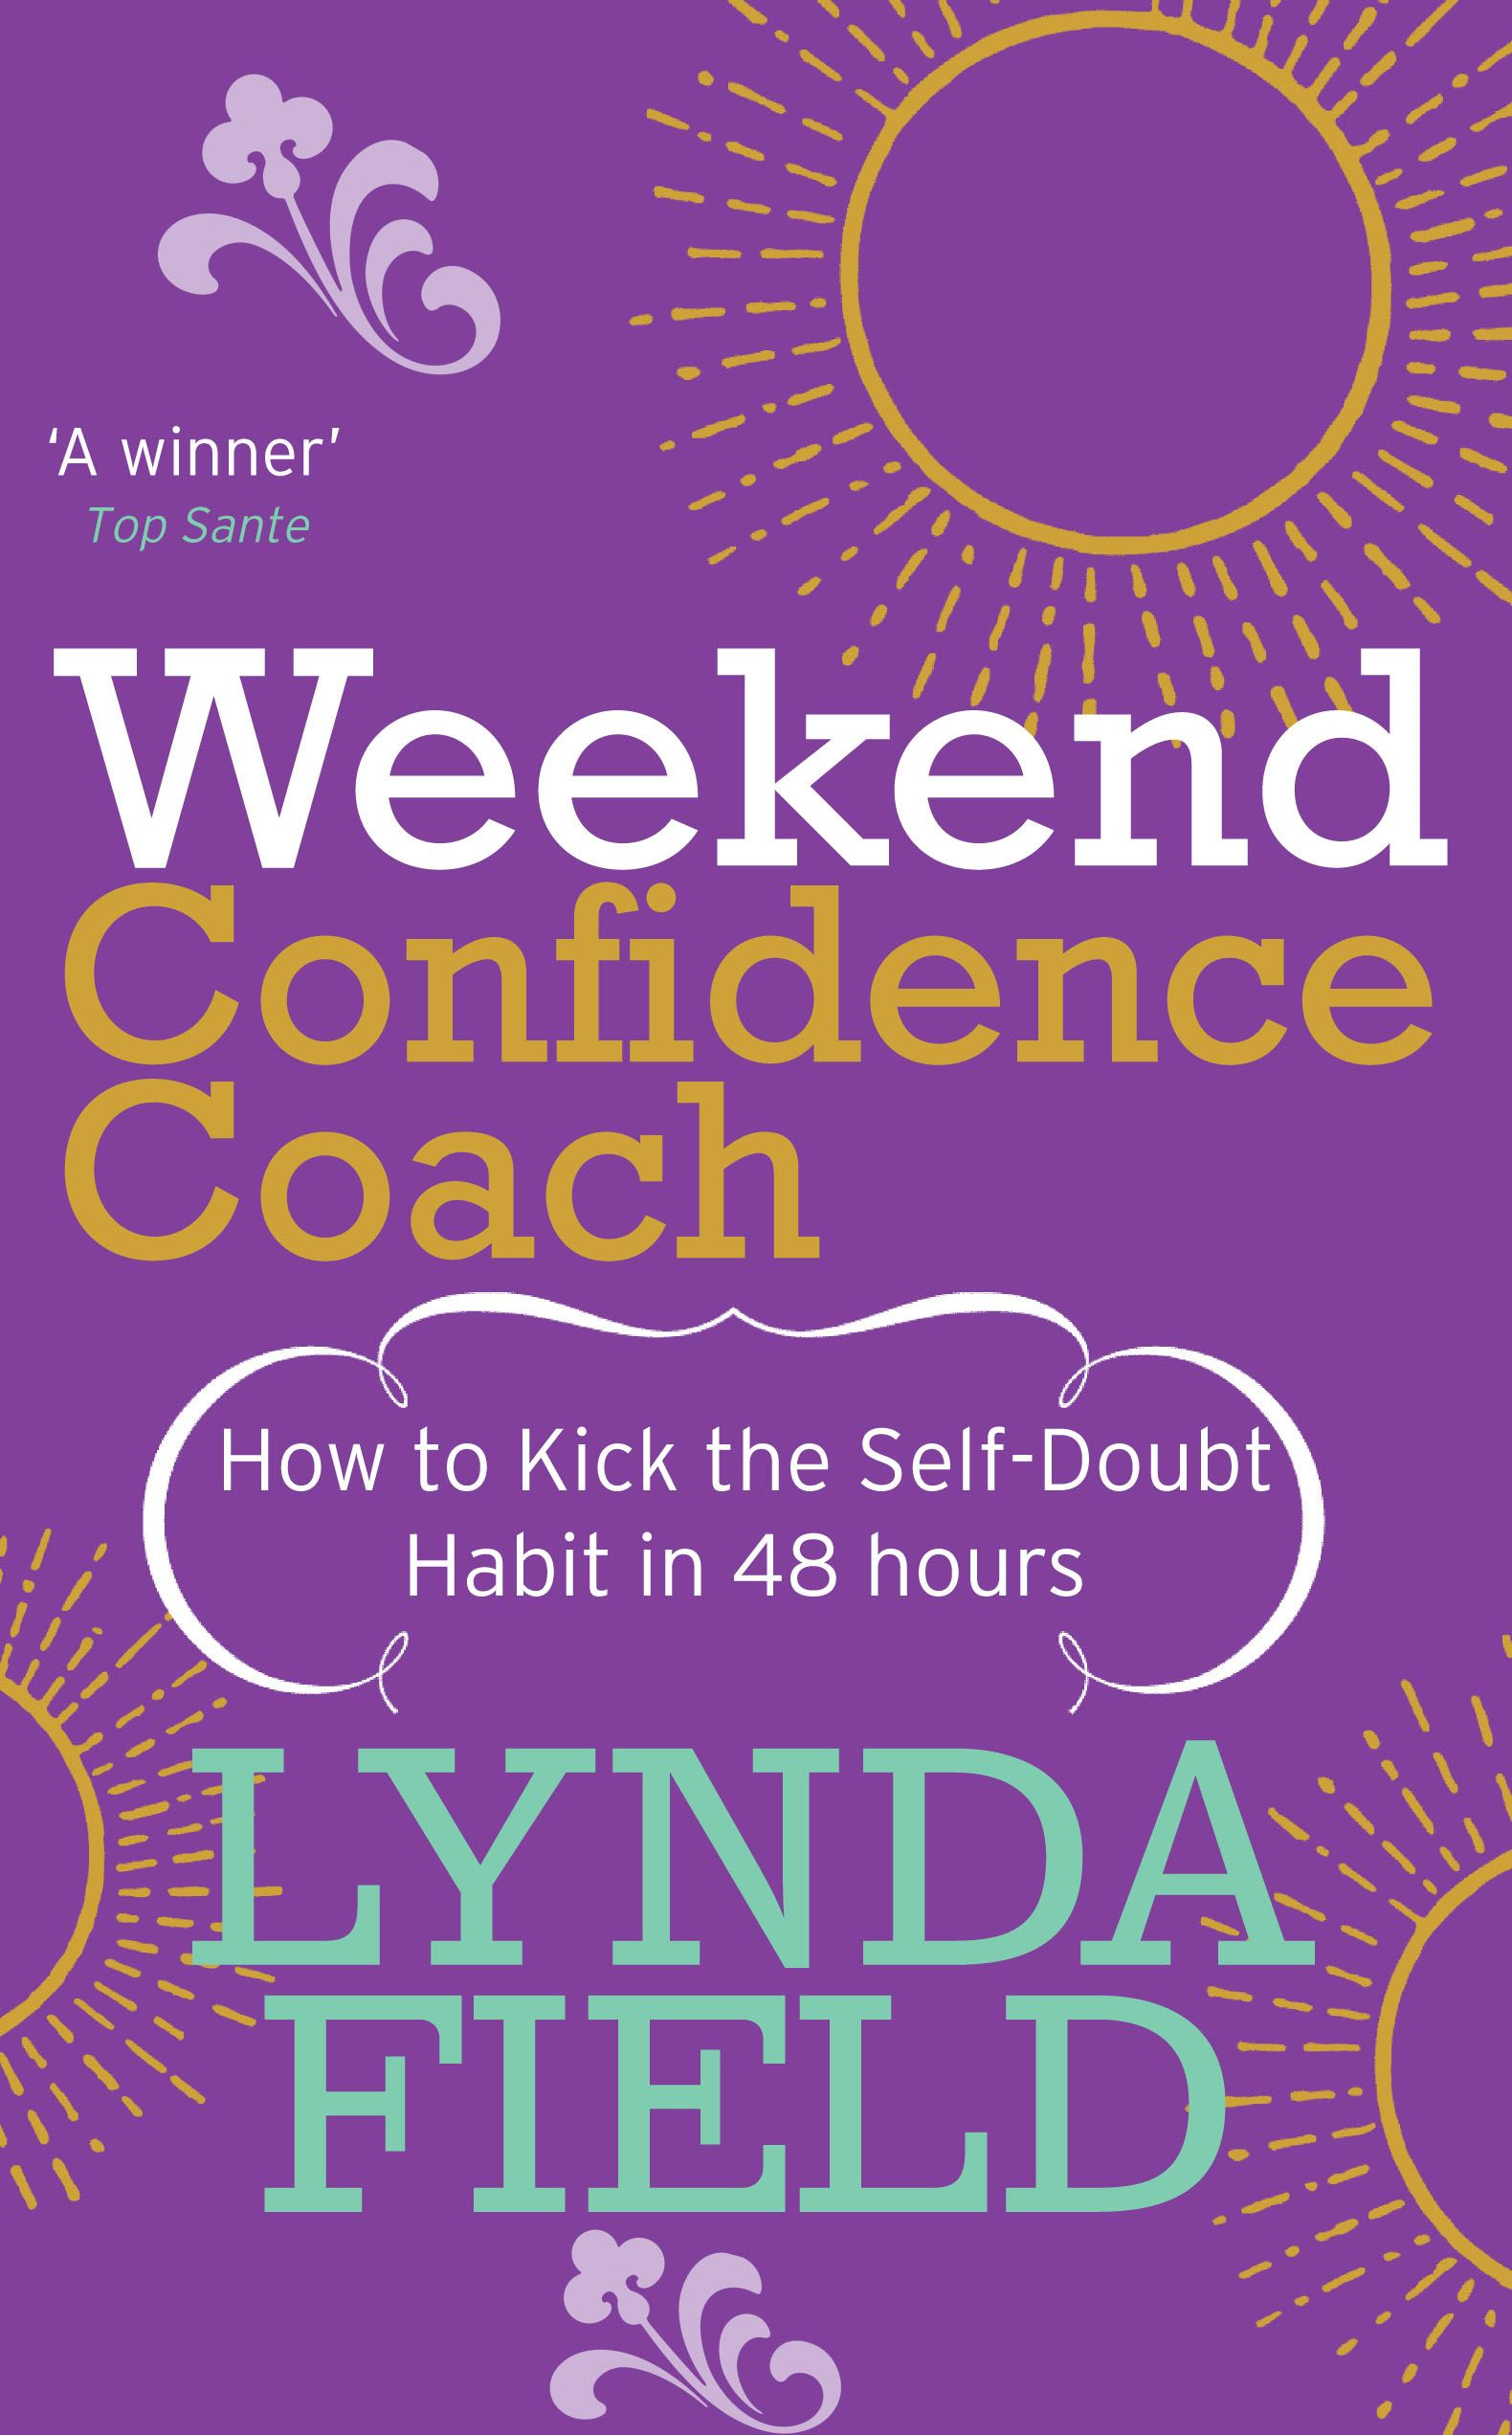 Weekend Confidence Coach How to kick the self-doubt habit in 48 hours